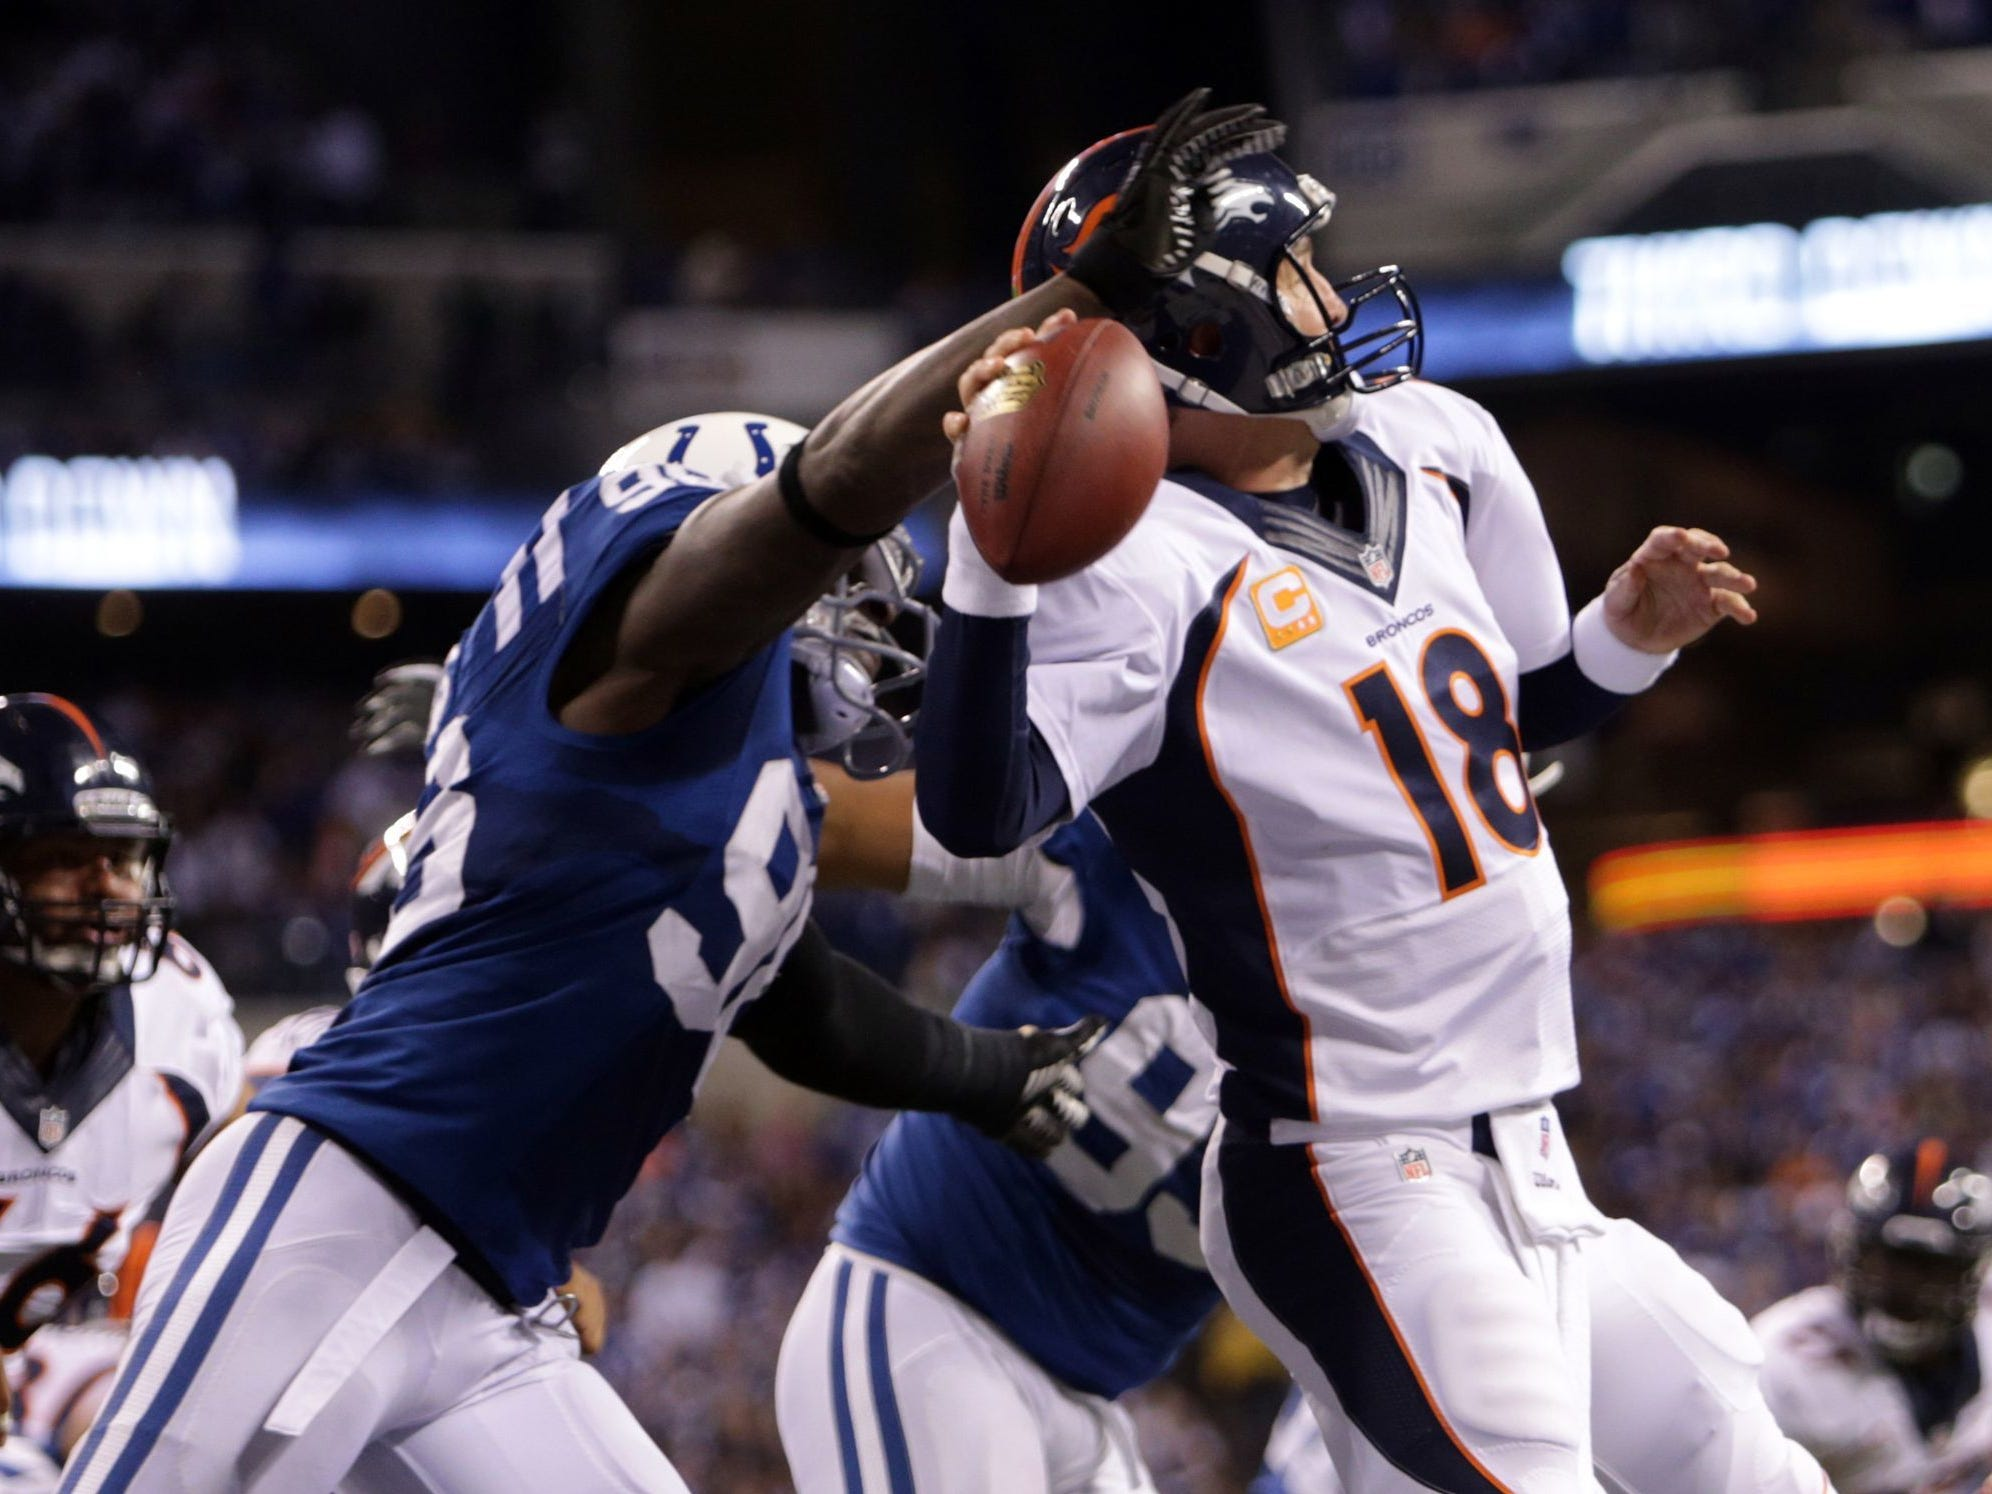 Denver Broncos quarterback Peyton Manning is hit from behind by former teammate Robert Mathis during their game at Lucas Oil Stadium on October 20, 2013.